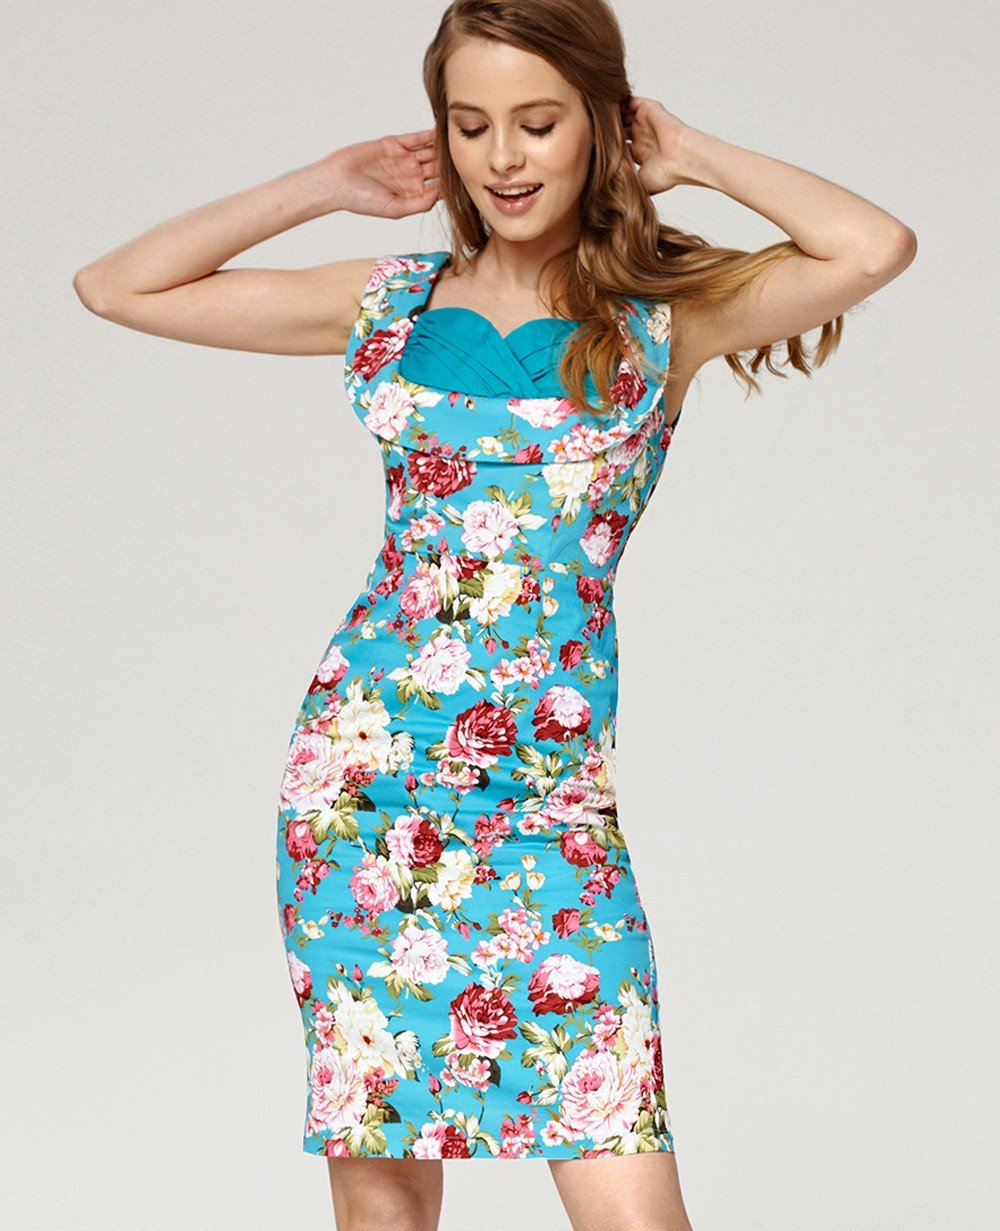 Misfit London Marisa Turquoise Floral Print Pencil office 1950s vintage inspired pencil wiggle dress